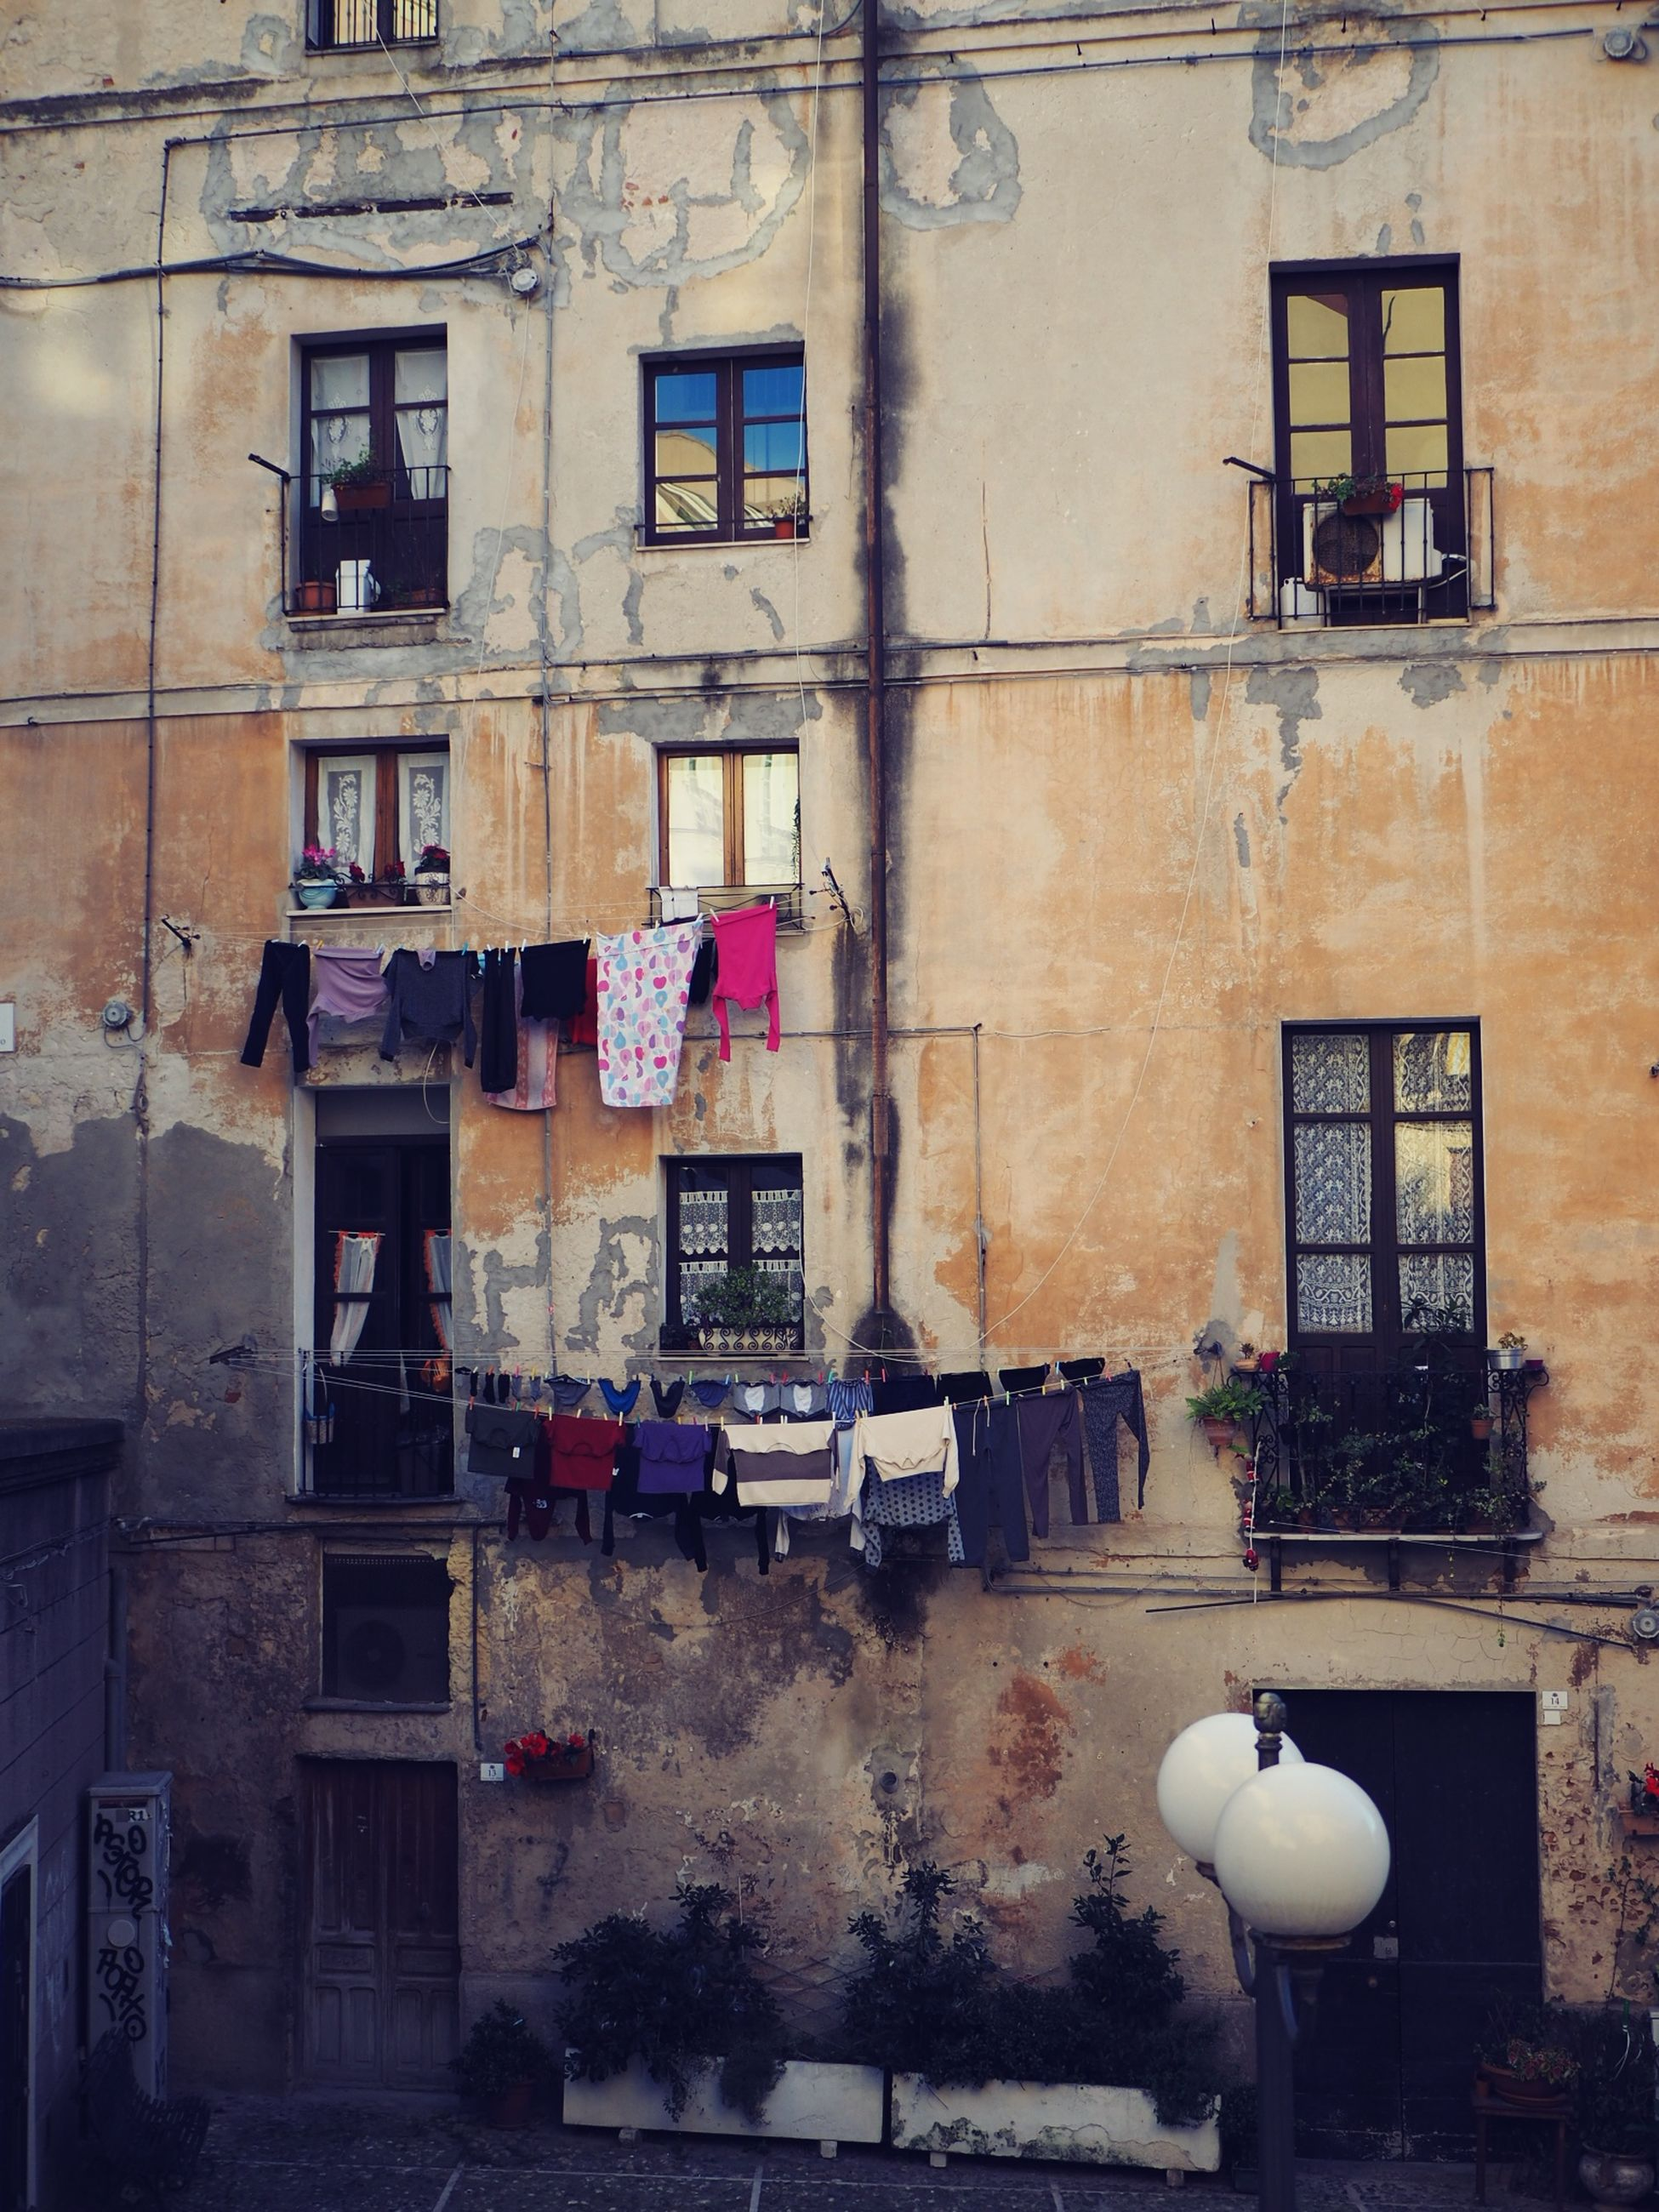 building exterior, built structure, architecture, residential district, building, window, day, city, no people, outdoors, hanging, wall - building feature, nature, wall, lighting equipment, clothing, street, house, old, weathered, apartment